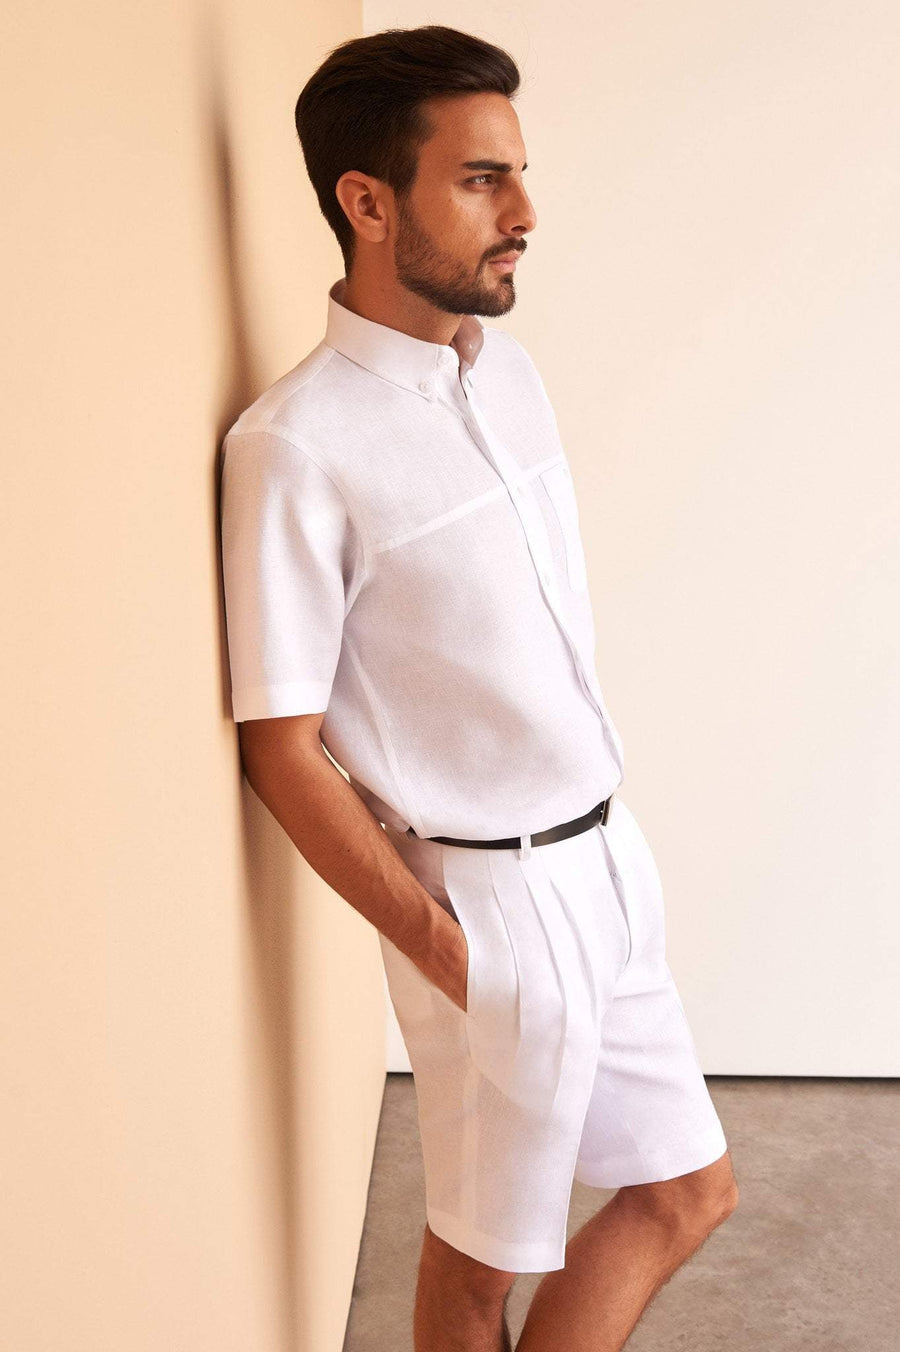 Men's Shorts White Linen Wear Clothing Fashion Luxury Golf